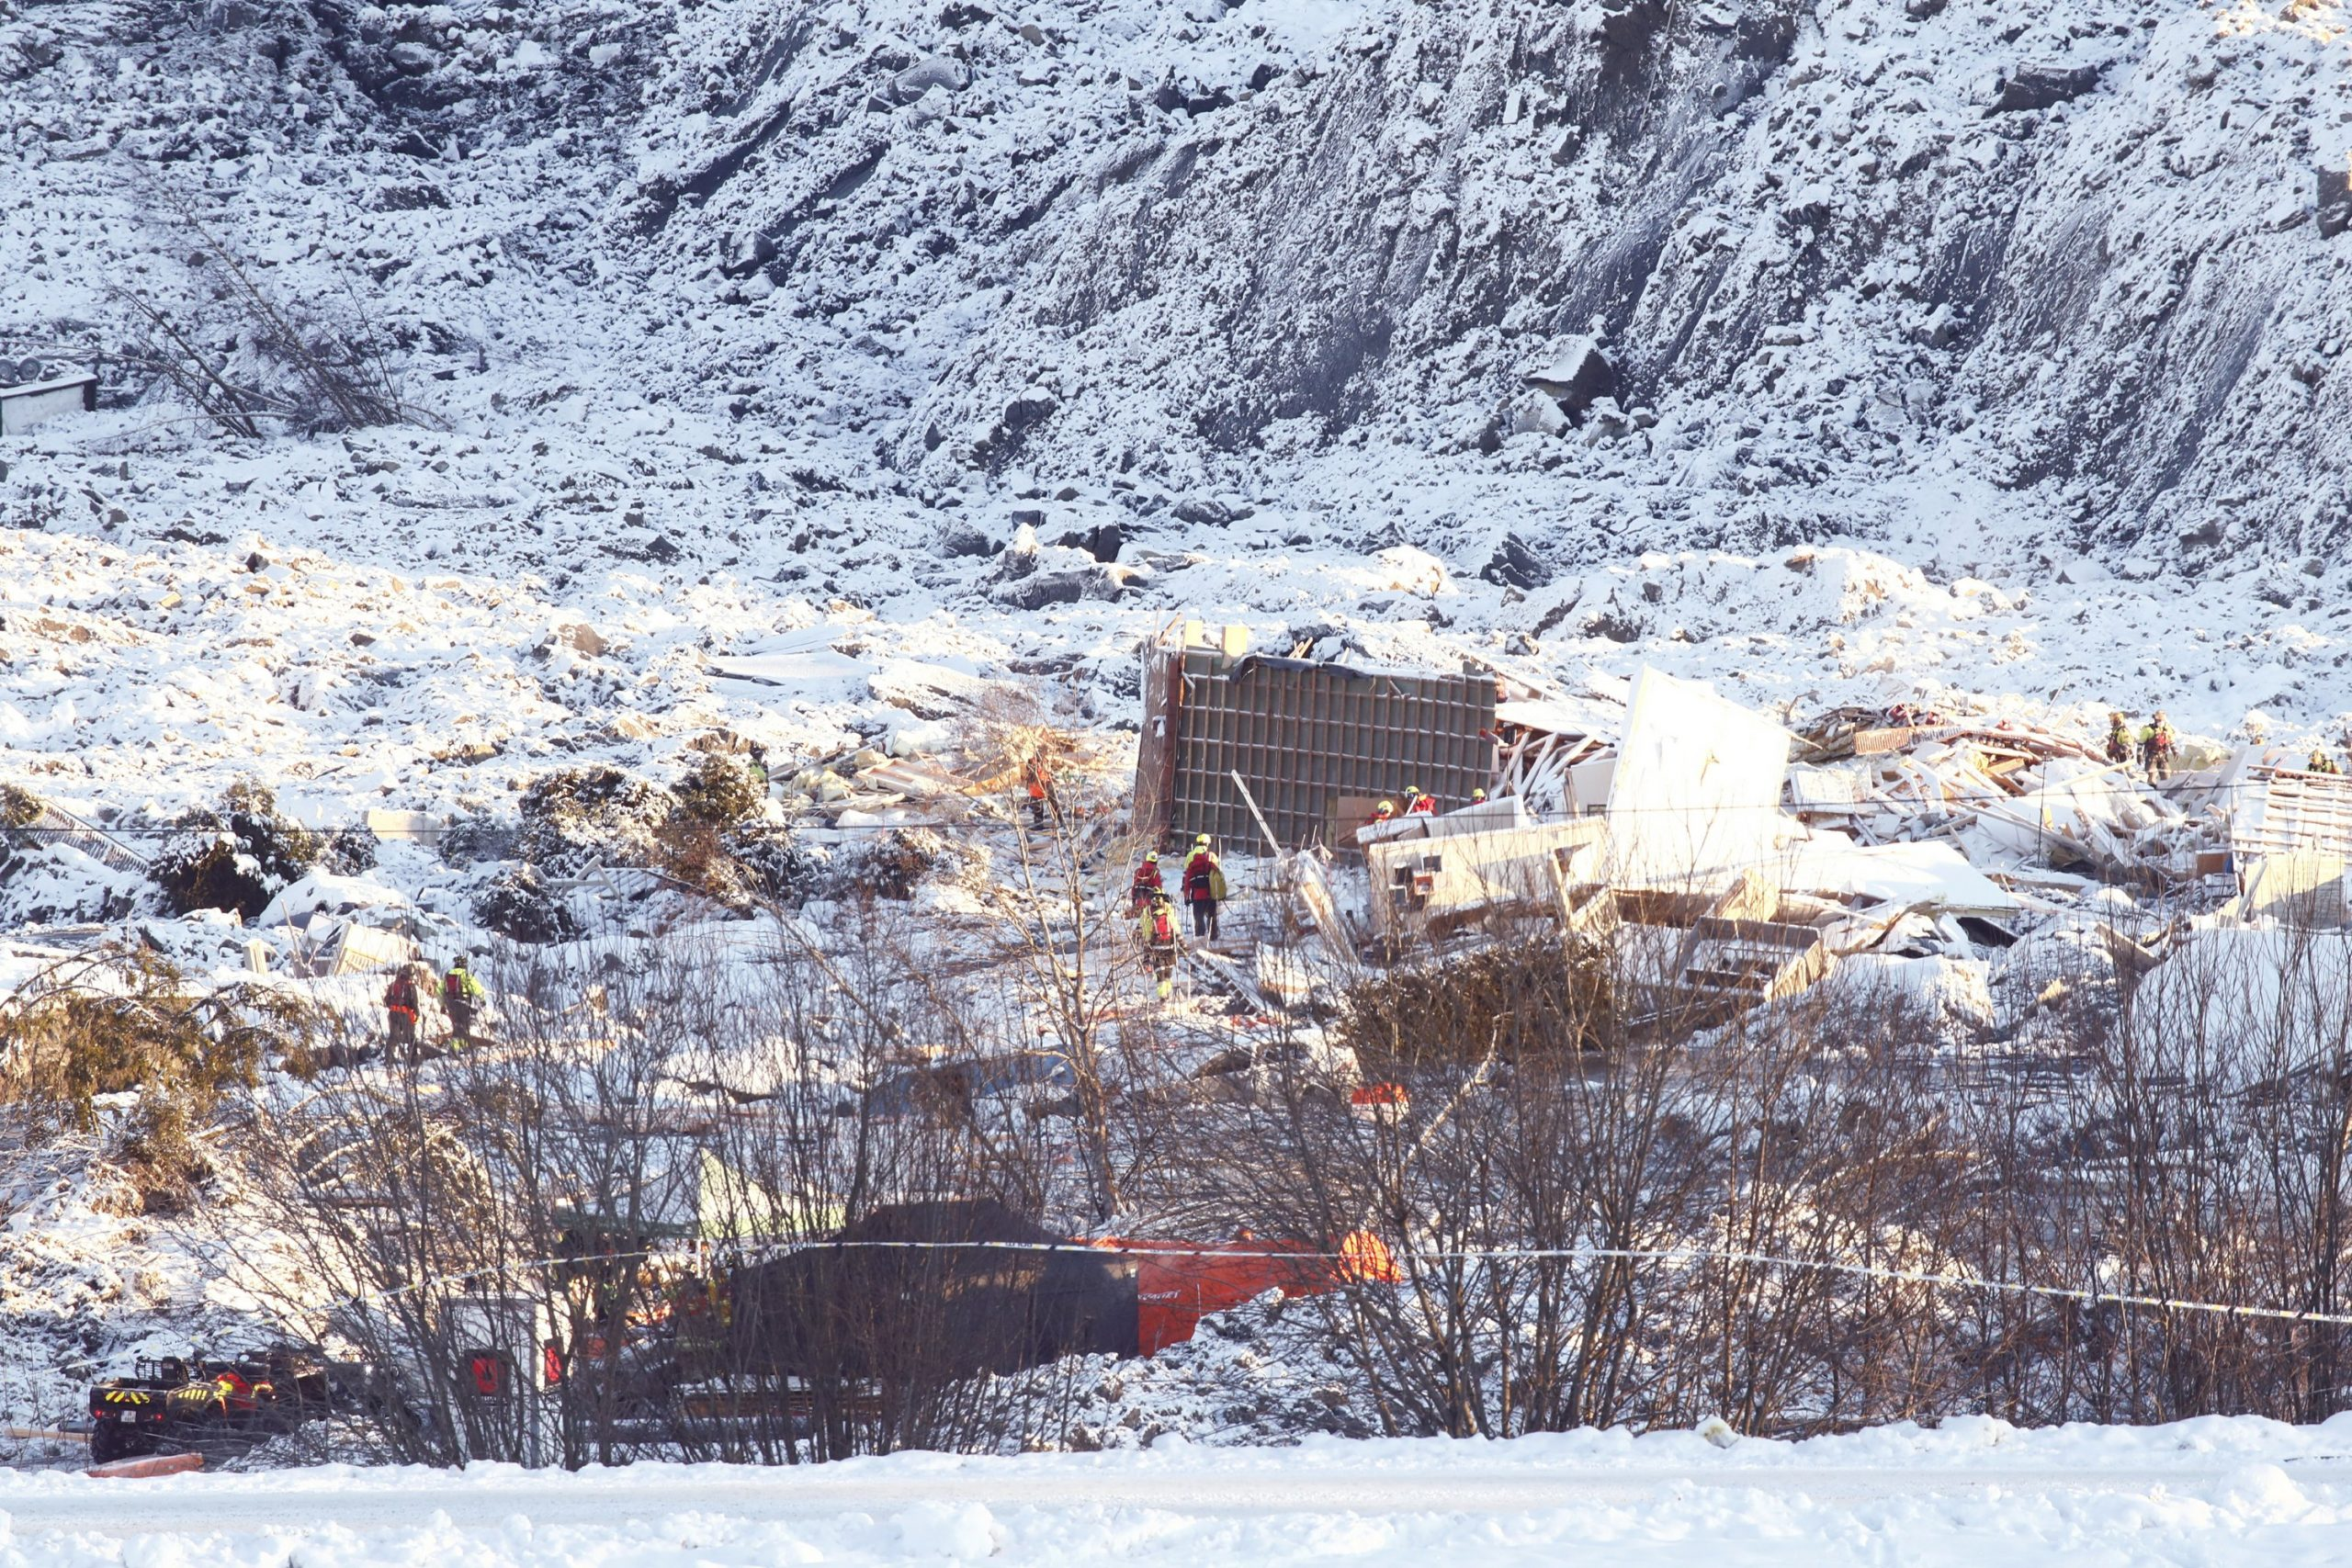 Dashed hope of a landslide in Norway that left 7 dead;  3 missing